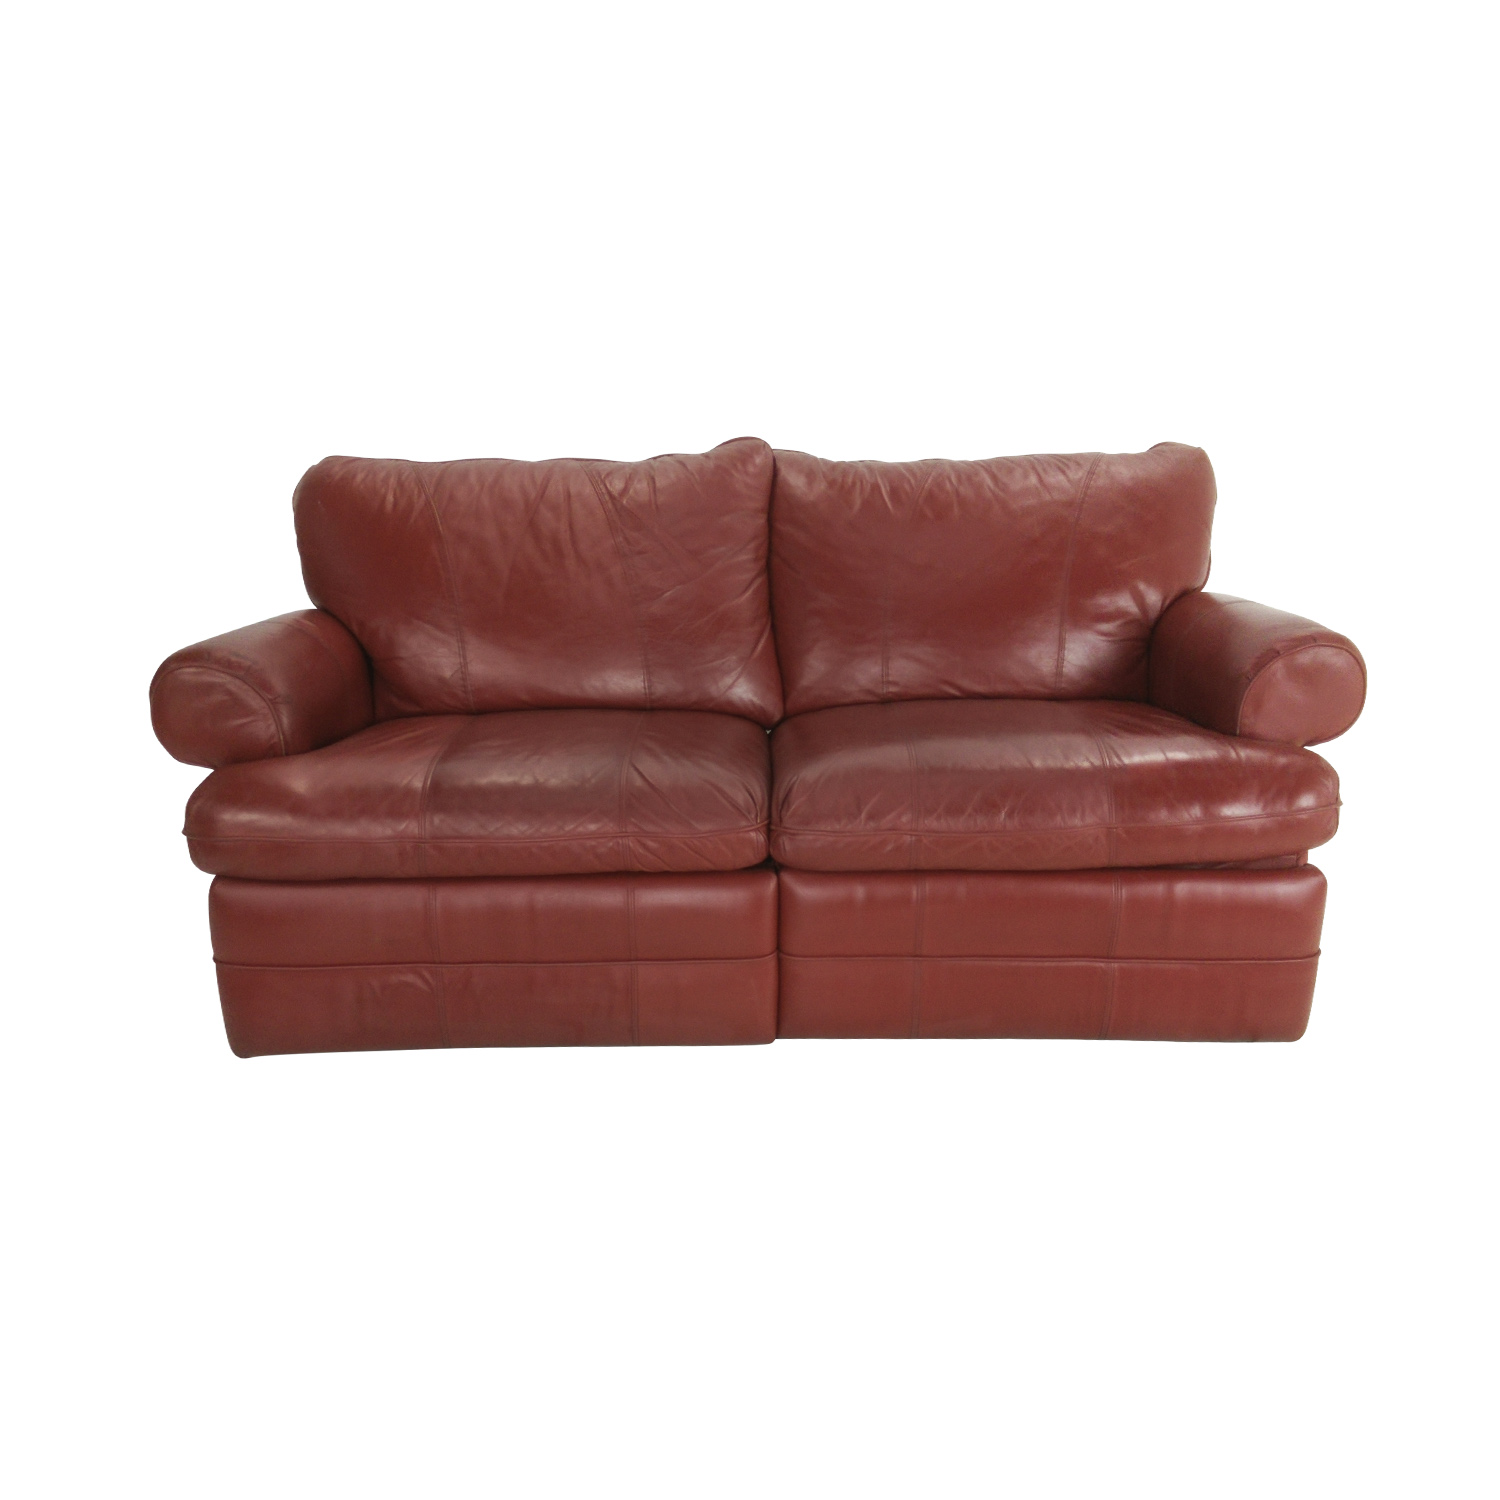 84 OFF  LaZBoy LaZBoy Red Recliner Couch  Sofas